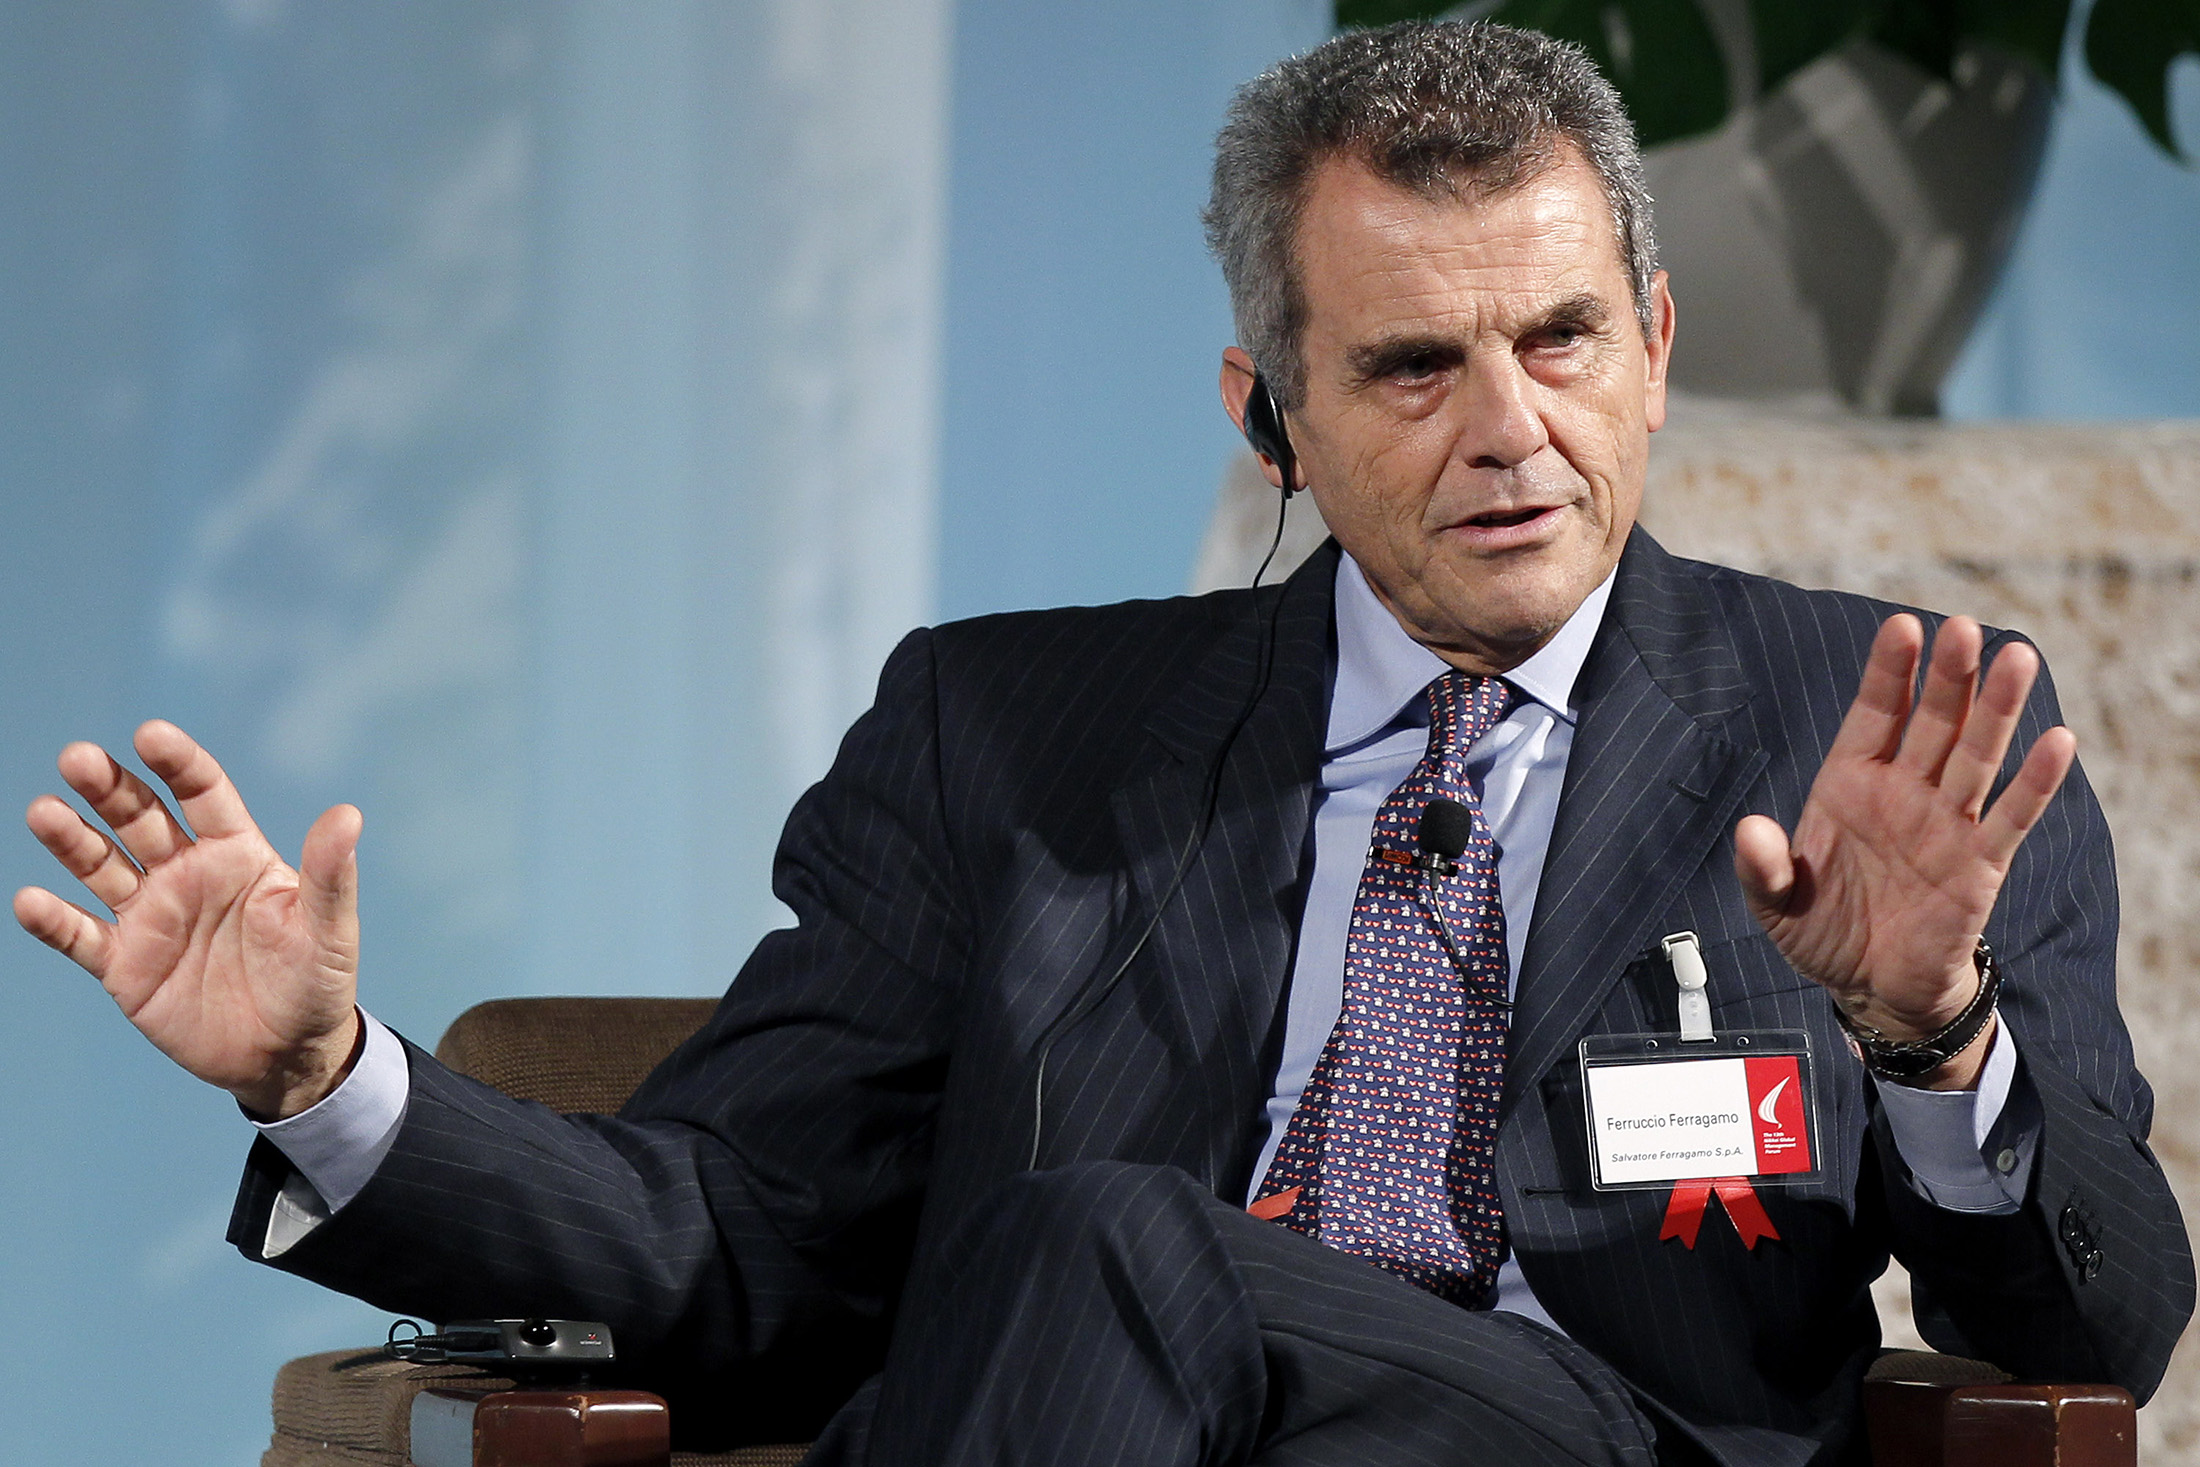 Ferruccio Ferragamo, chairman of Salvatore Ferragamo SpA, speaks at the 13th Nikkei Global Management Forum in Tokyo, Japan, on Monday, Oct. 24, 2011. The 2 day forum is organized by Nikkei Inc., IMD and Japan Center for Economic Research